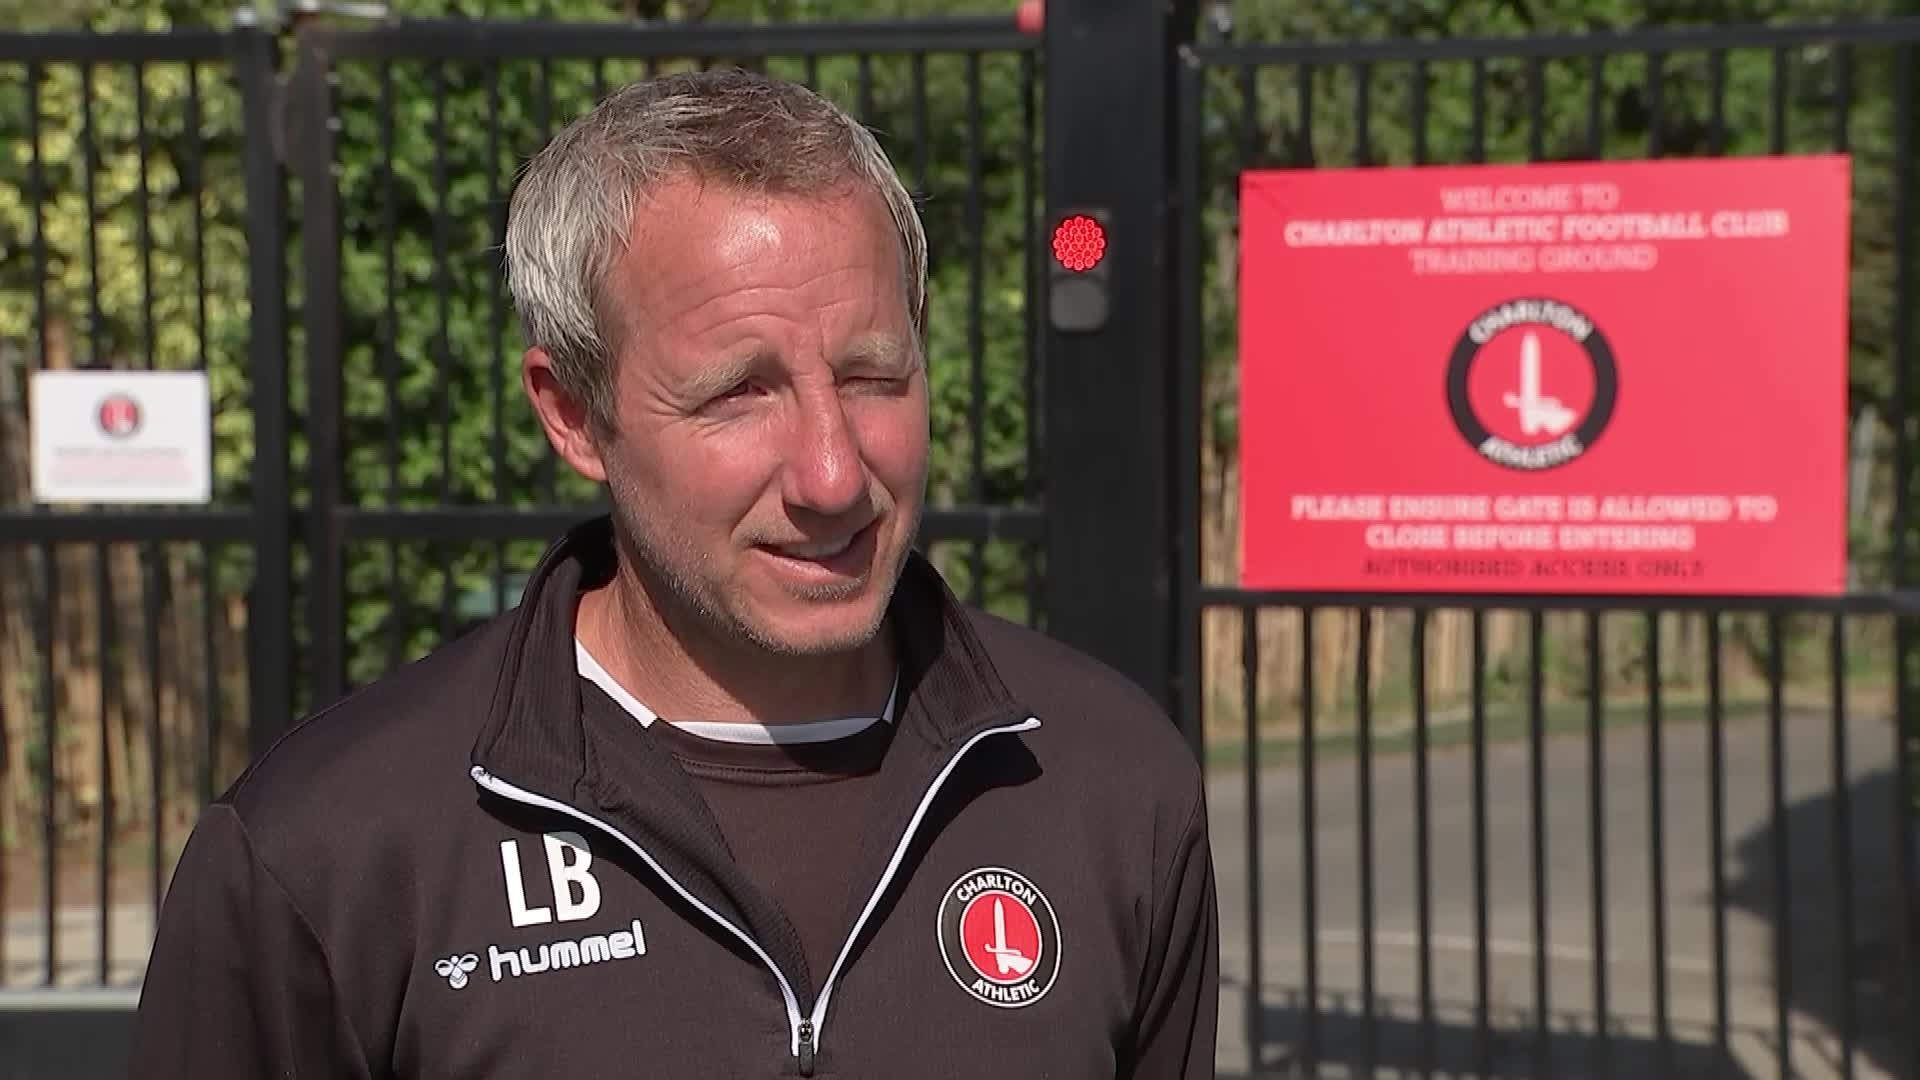 Lee Bowyer on returning to contact training, unavailable players and getting ready for the first game (June 2020)